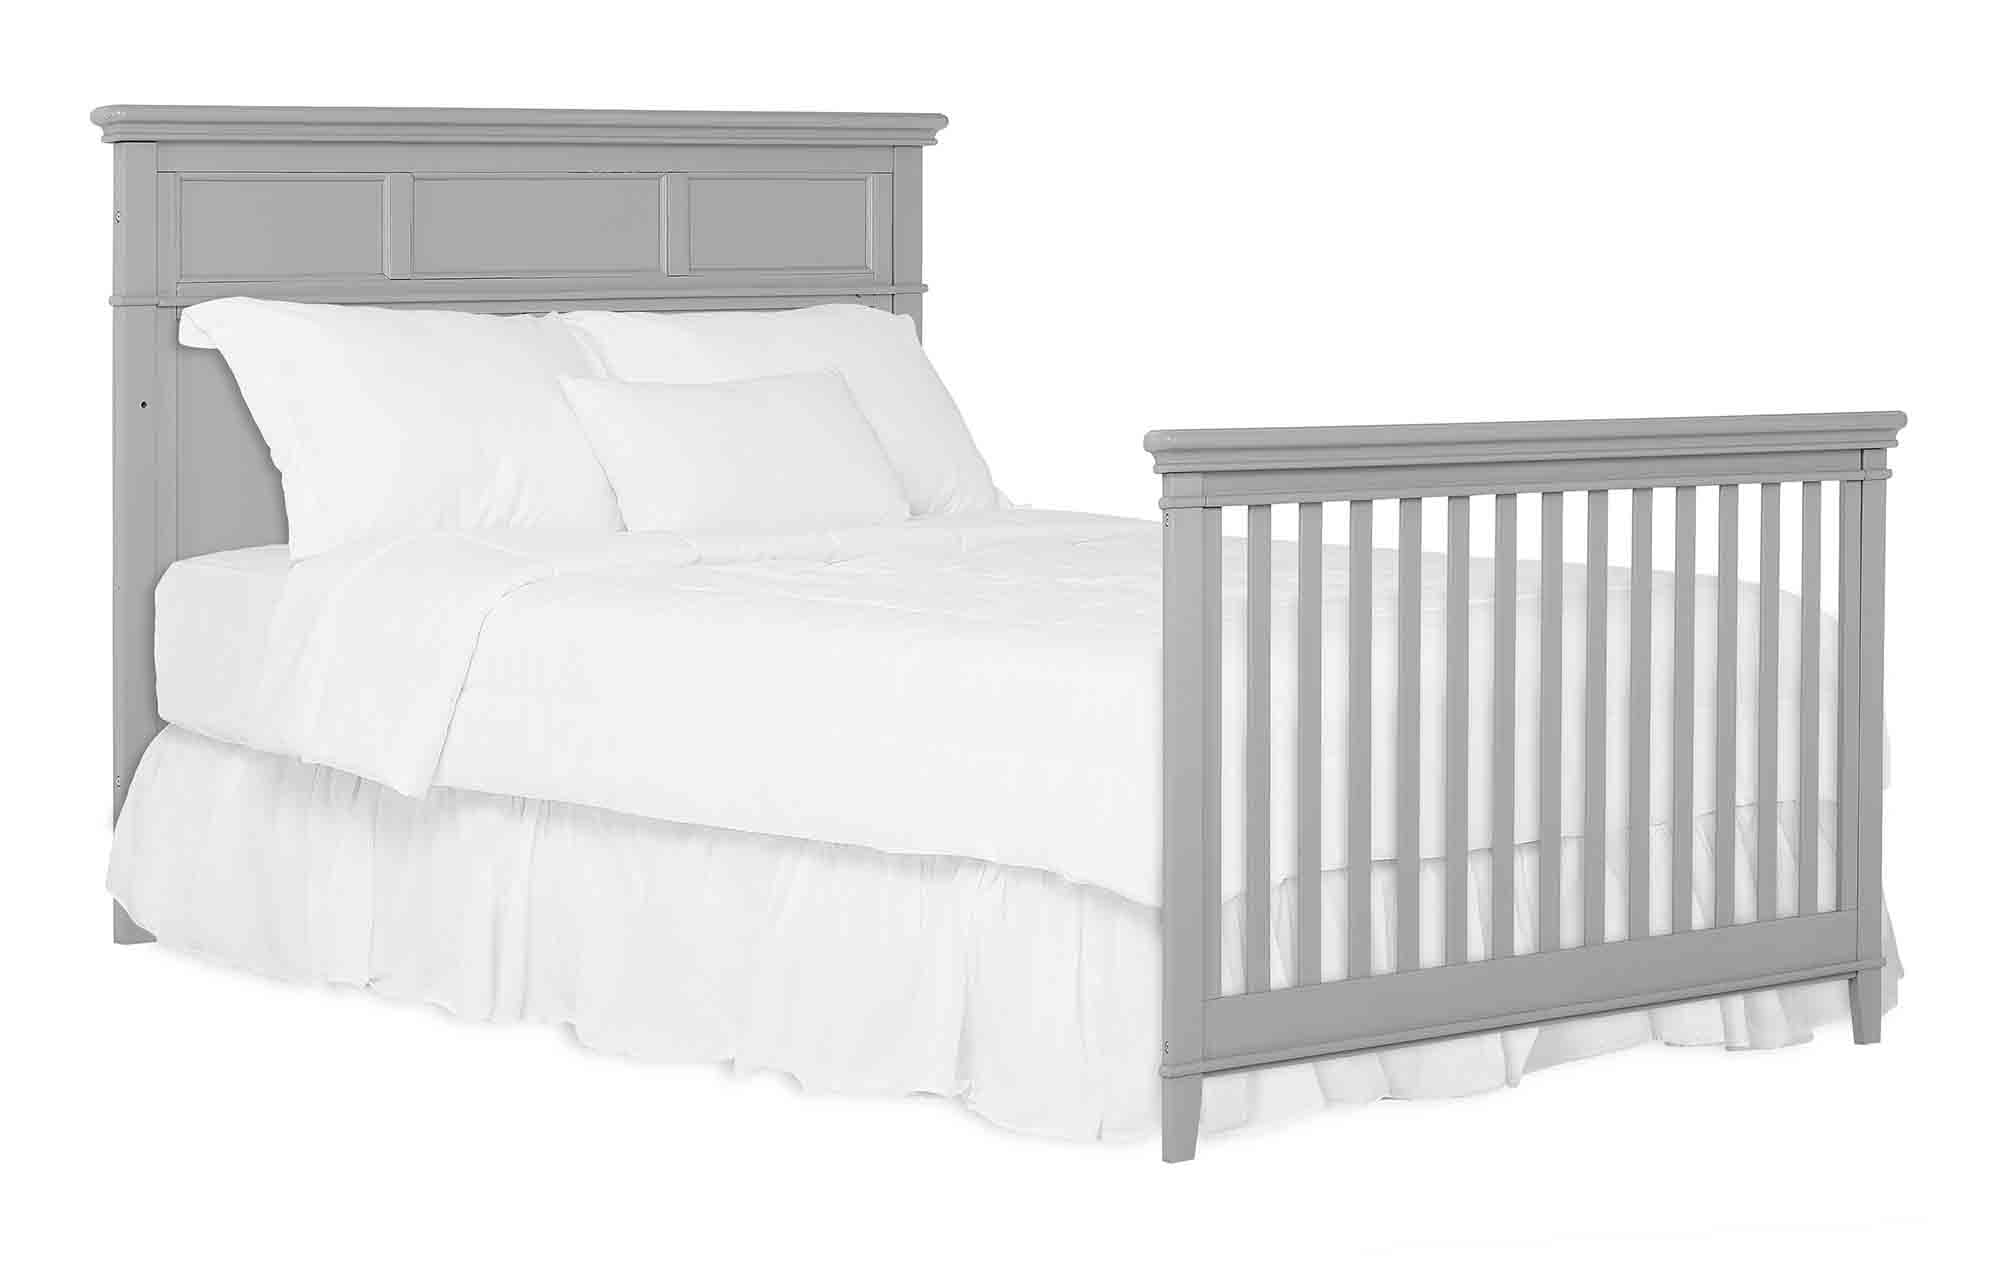 776-PG Blue Ridge Full-Size Bed with Footboard